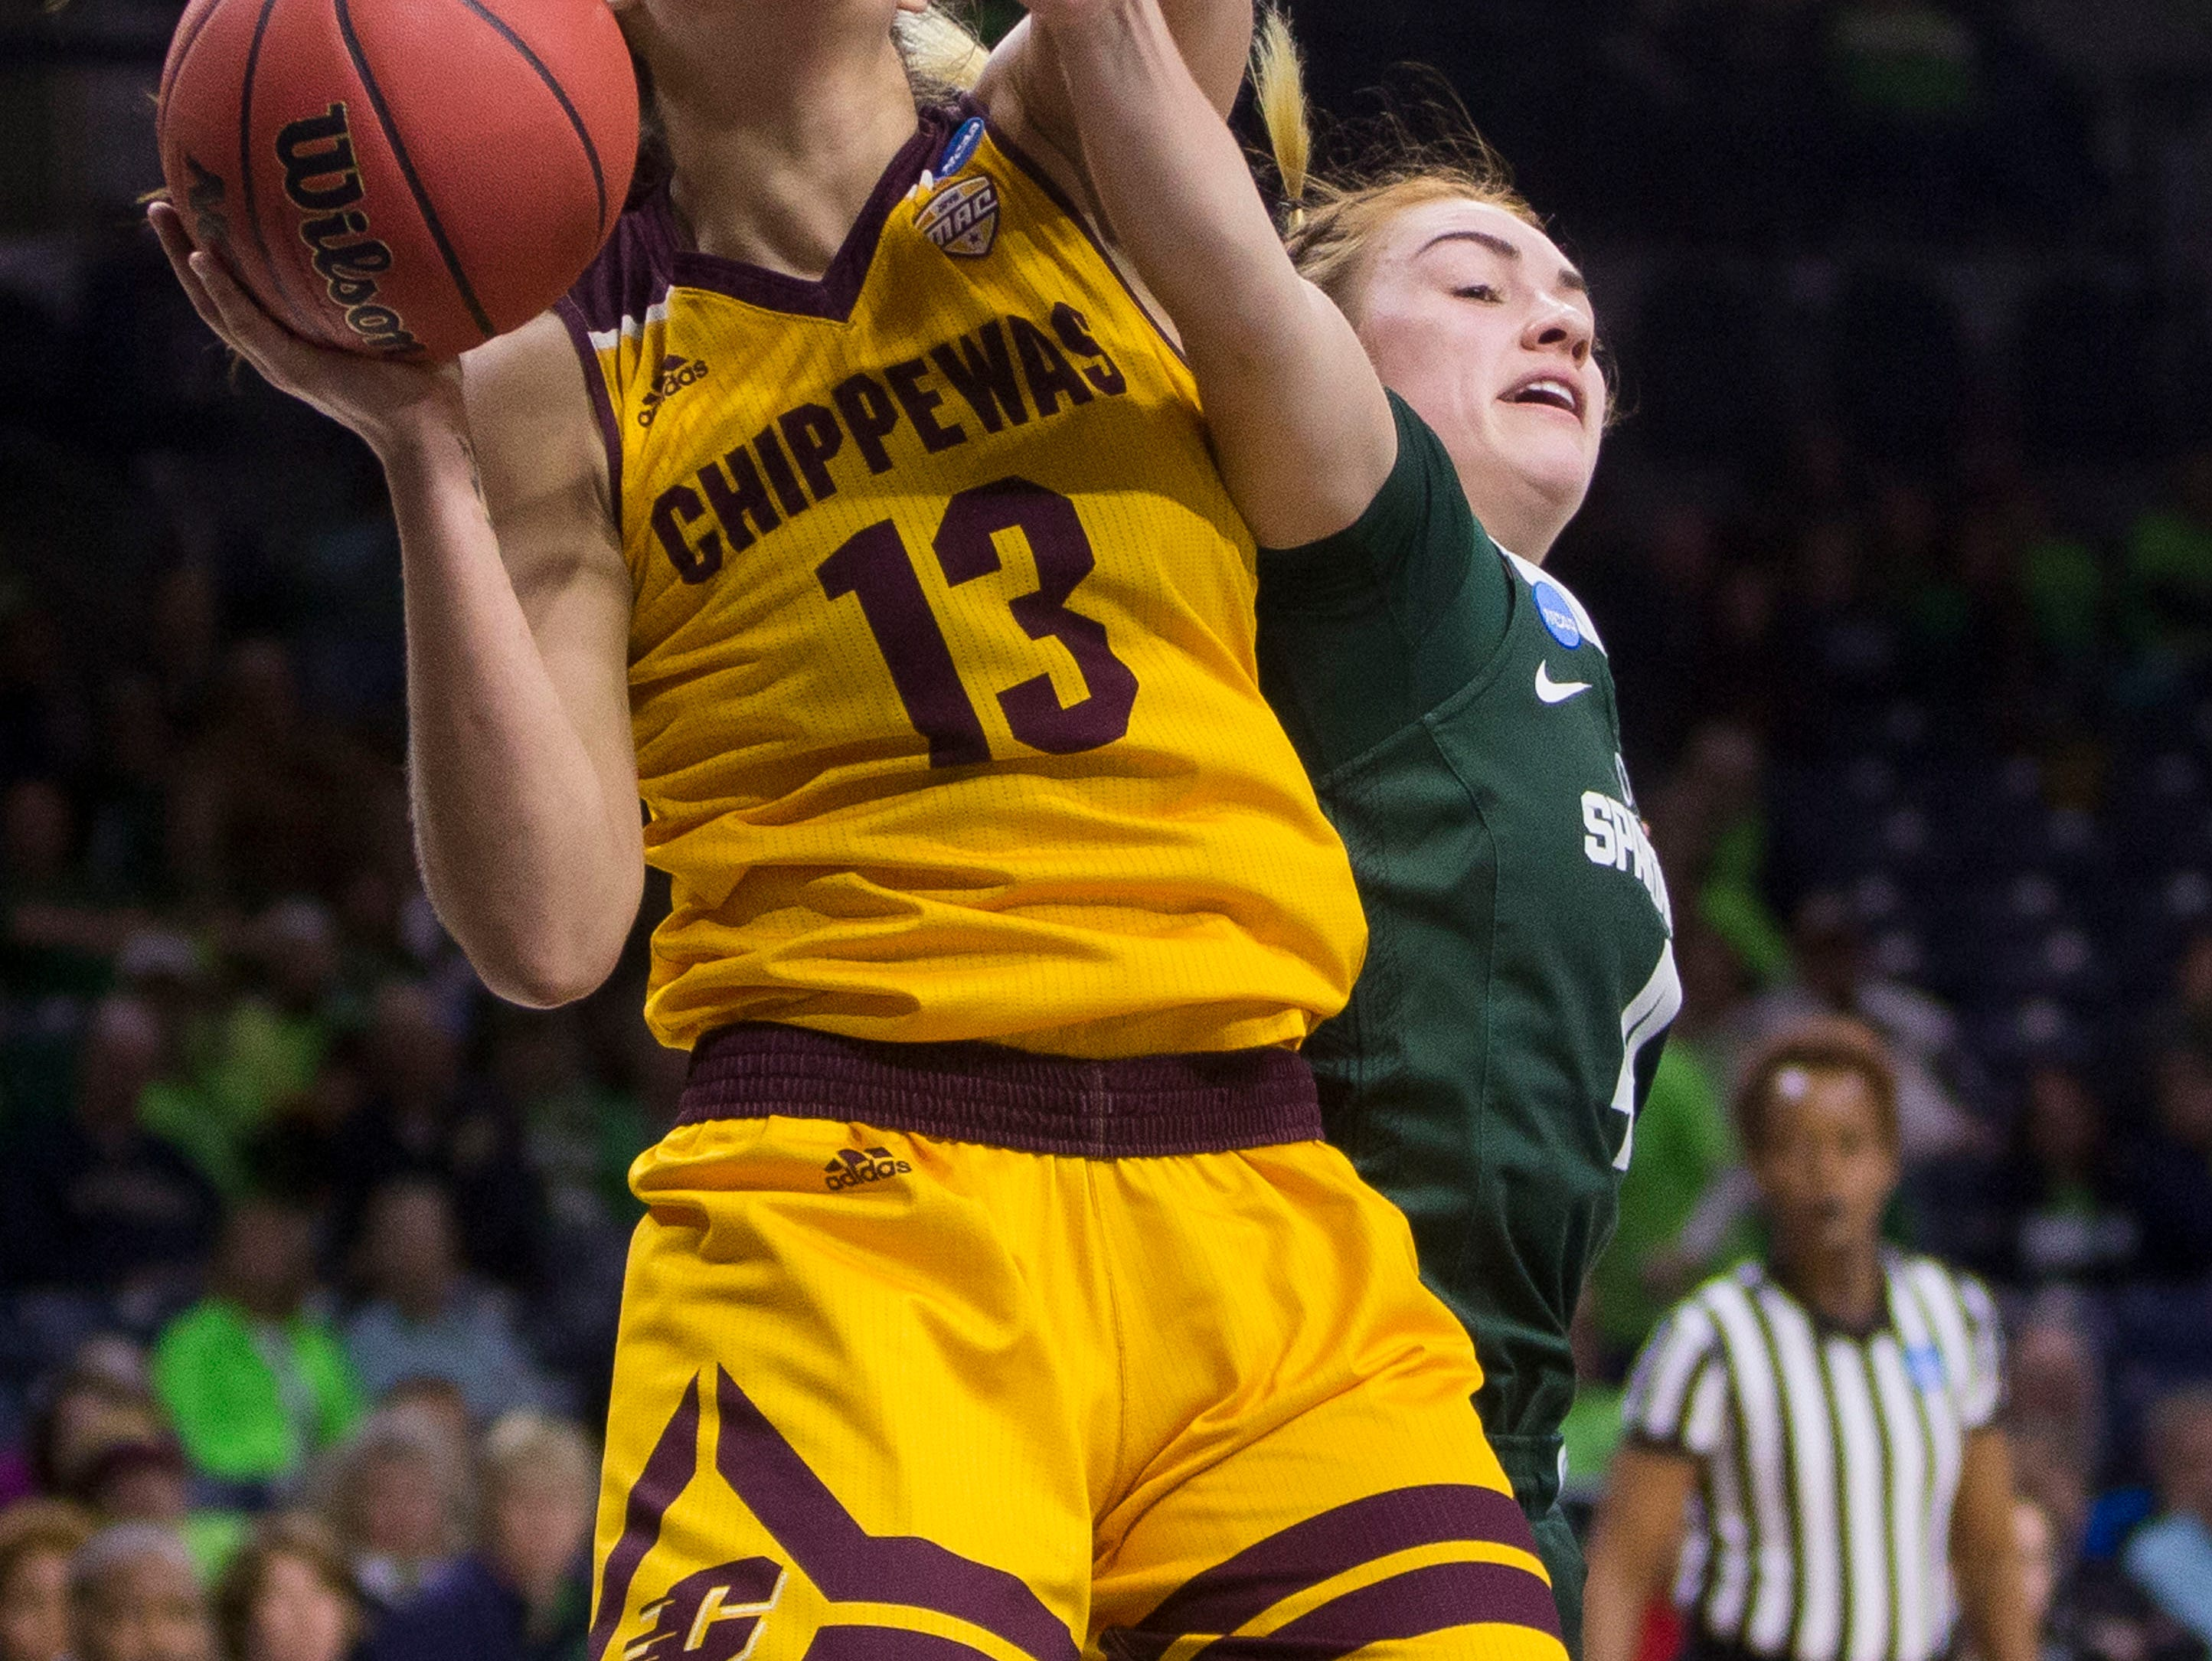 Central Michigan's Reyna Frost (13) goes up for a shot as Michigan State's Taryn McCutcheon defends during a first-round game in the NCAA women's college basketball tournament in South Bend, Ind., Saturday, March 23, 2019.